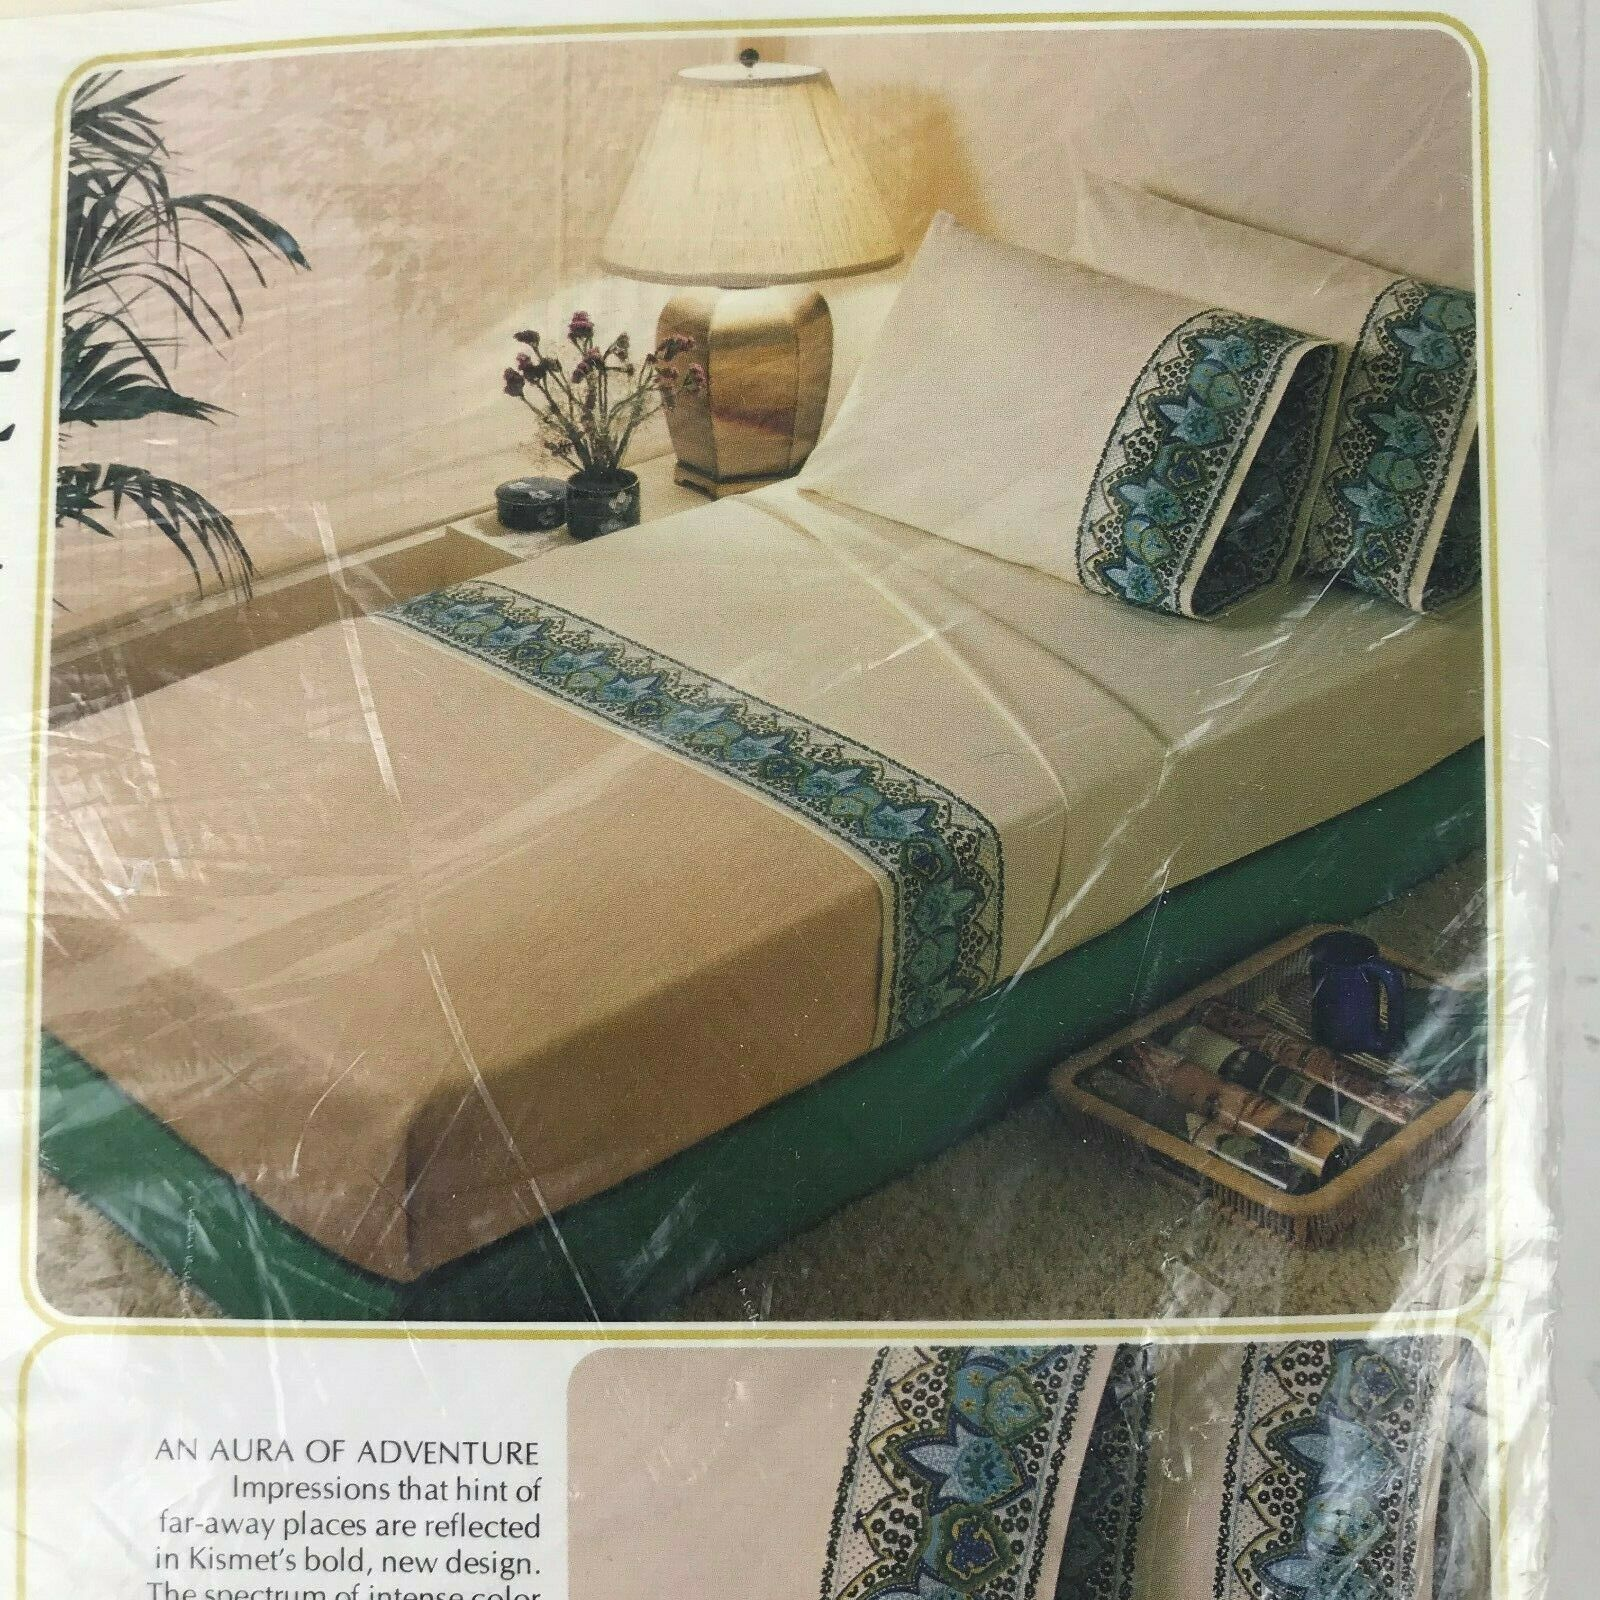 Primary image for Vintage 1970s Sears Roebuck Kismet Perma Prest Percal King Flat Sheet Groovy